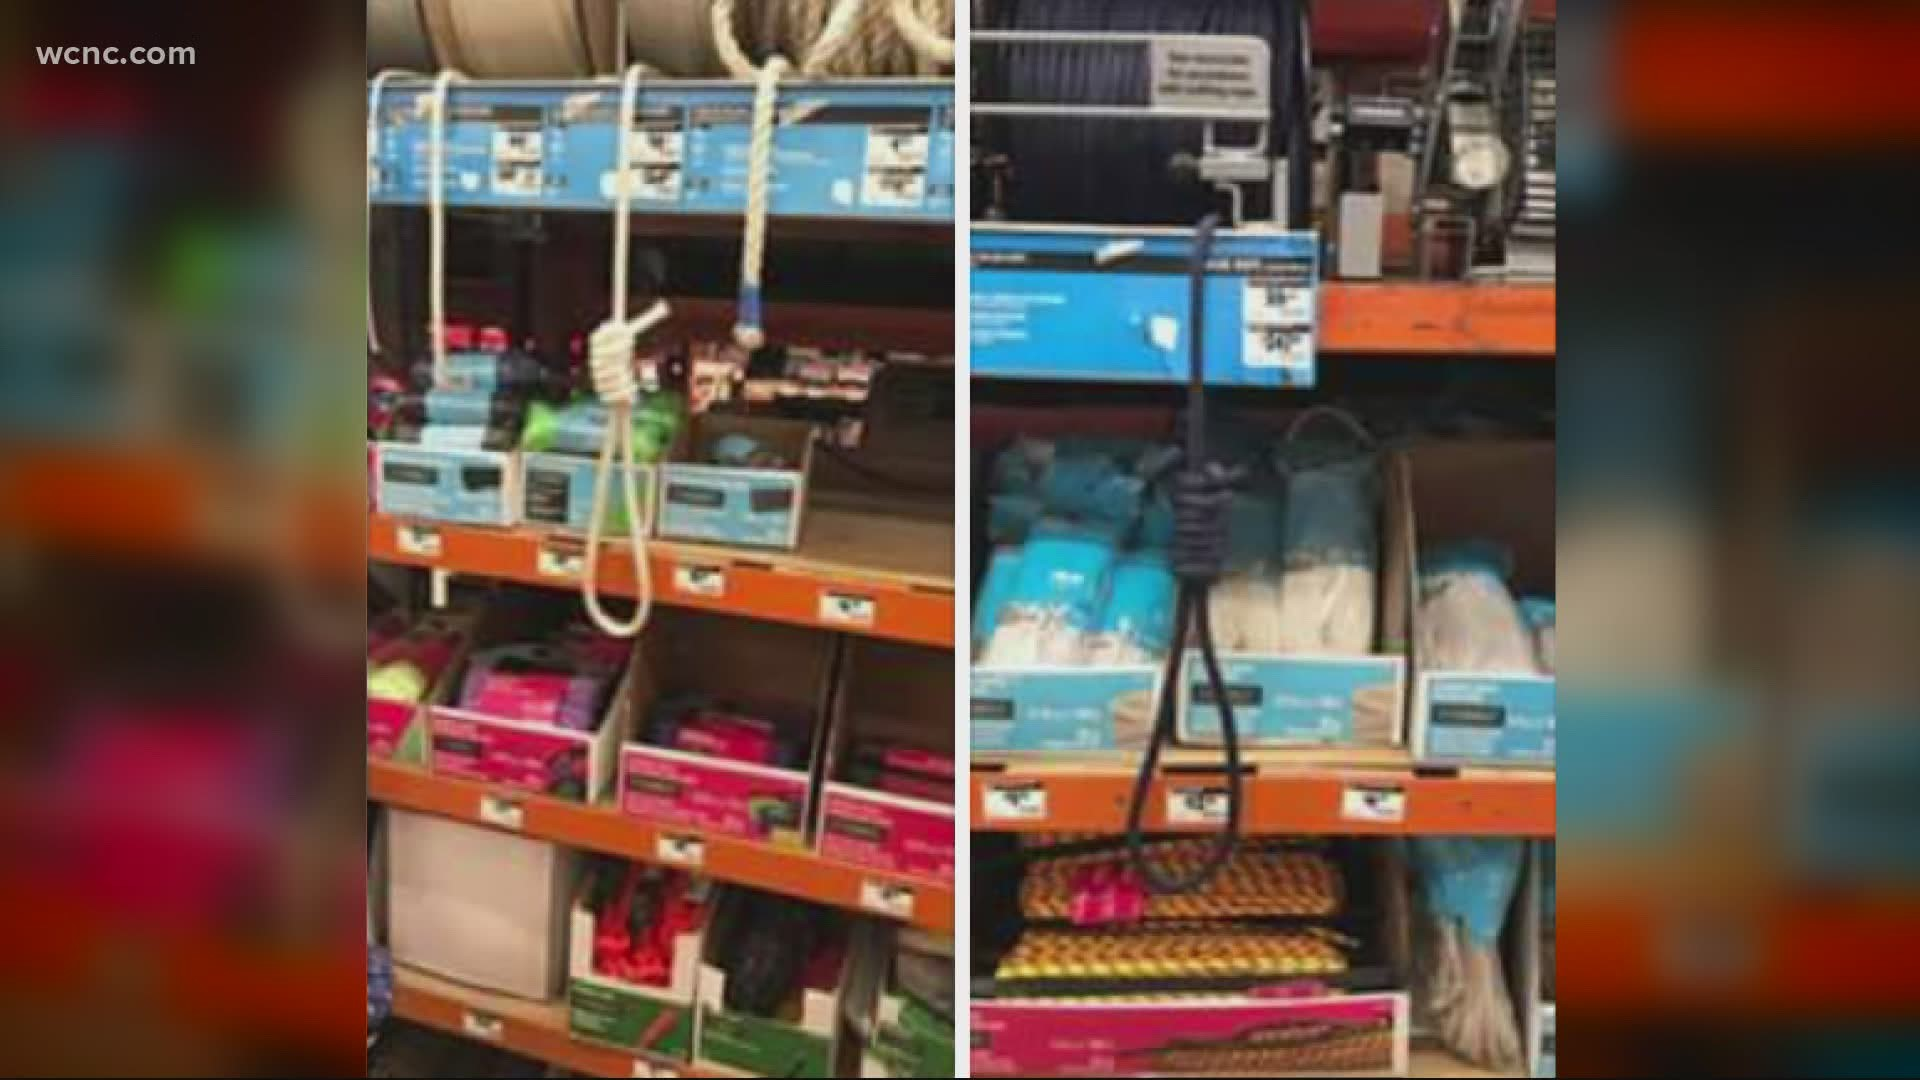 Charlotte Woman Says She Discovered Nooses Hanging In Home Depot 9news Com